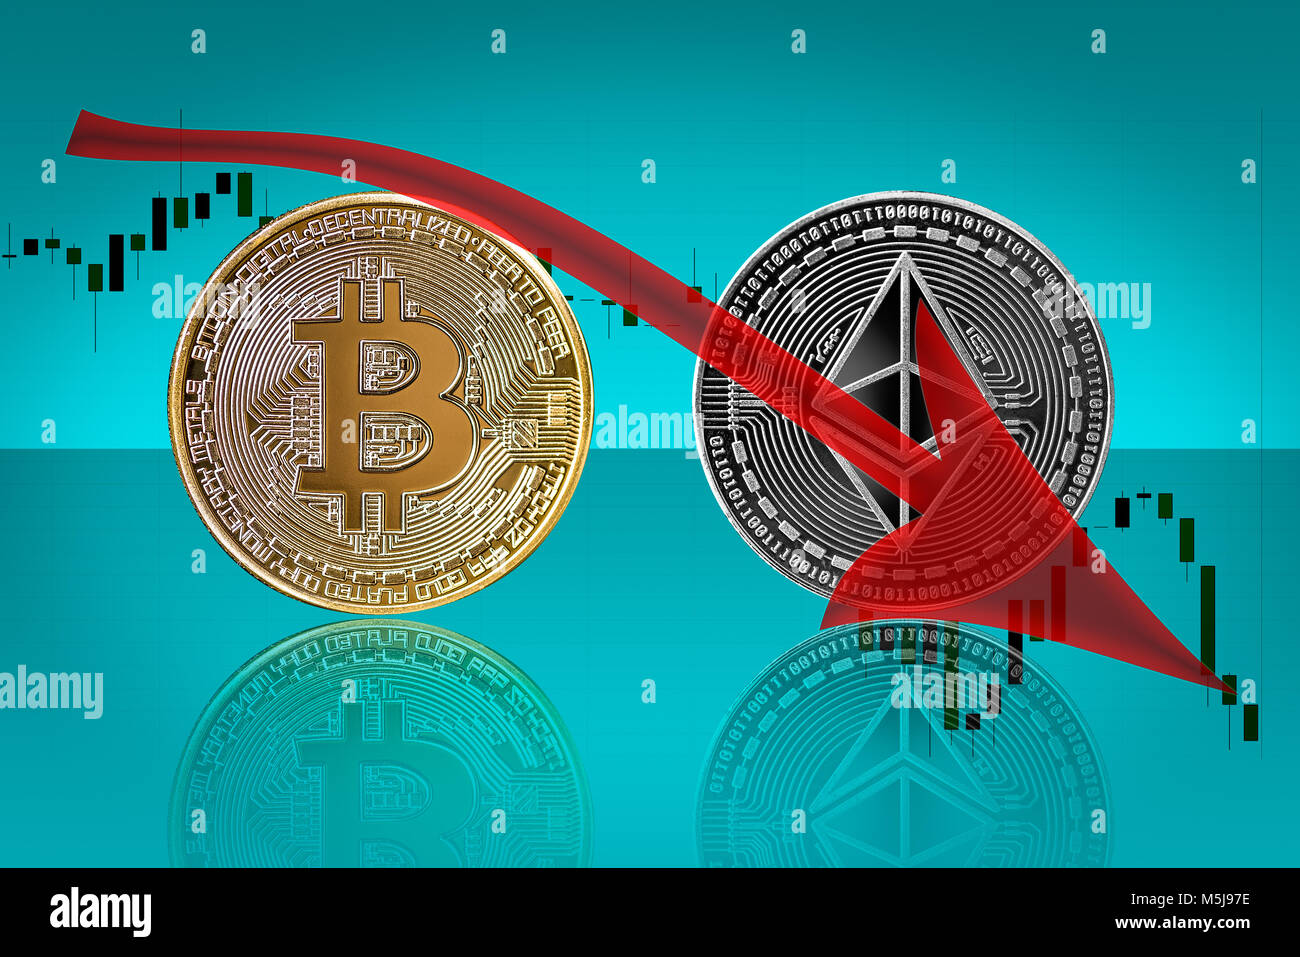 Bitcoin ethereum coins in bearish trend - Stock Image